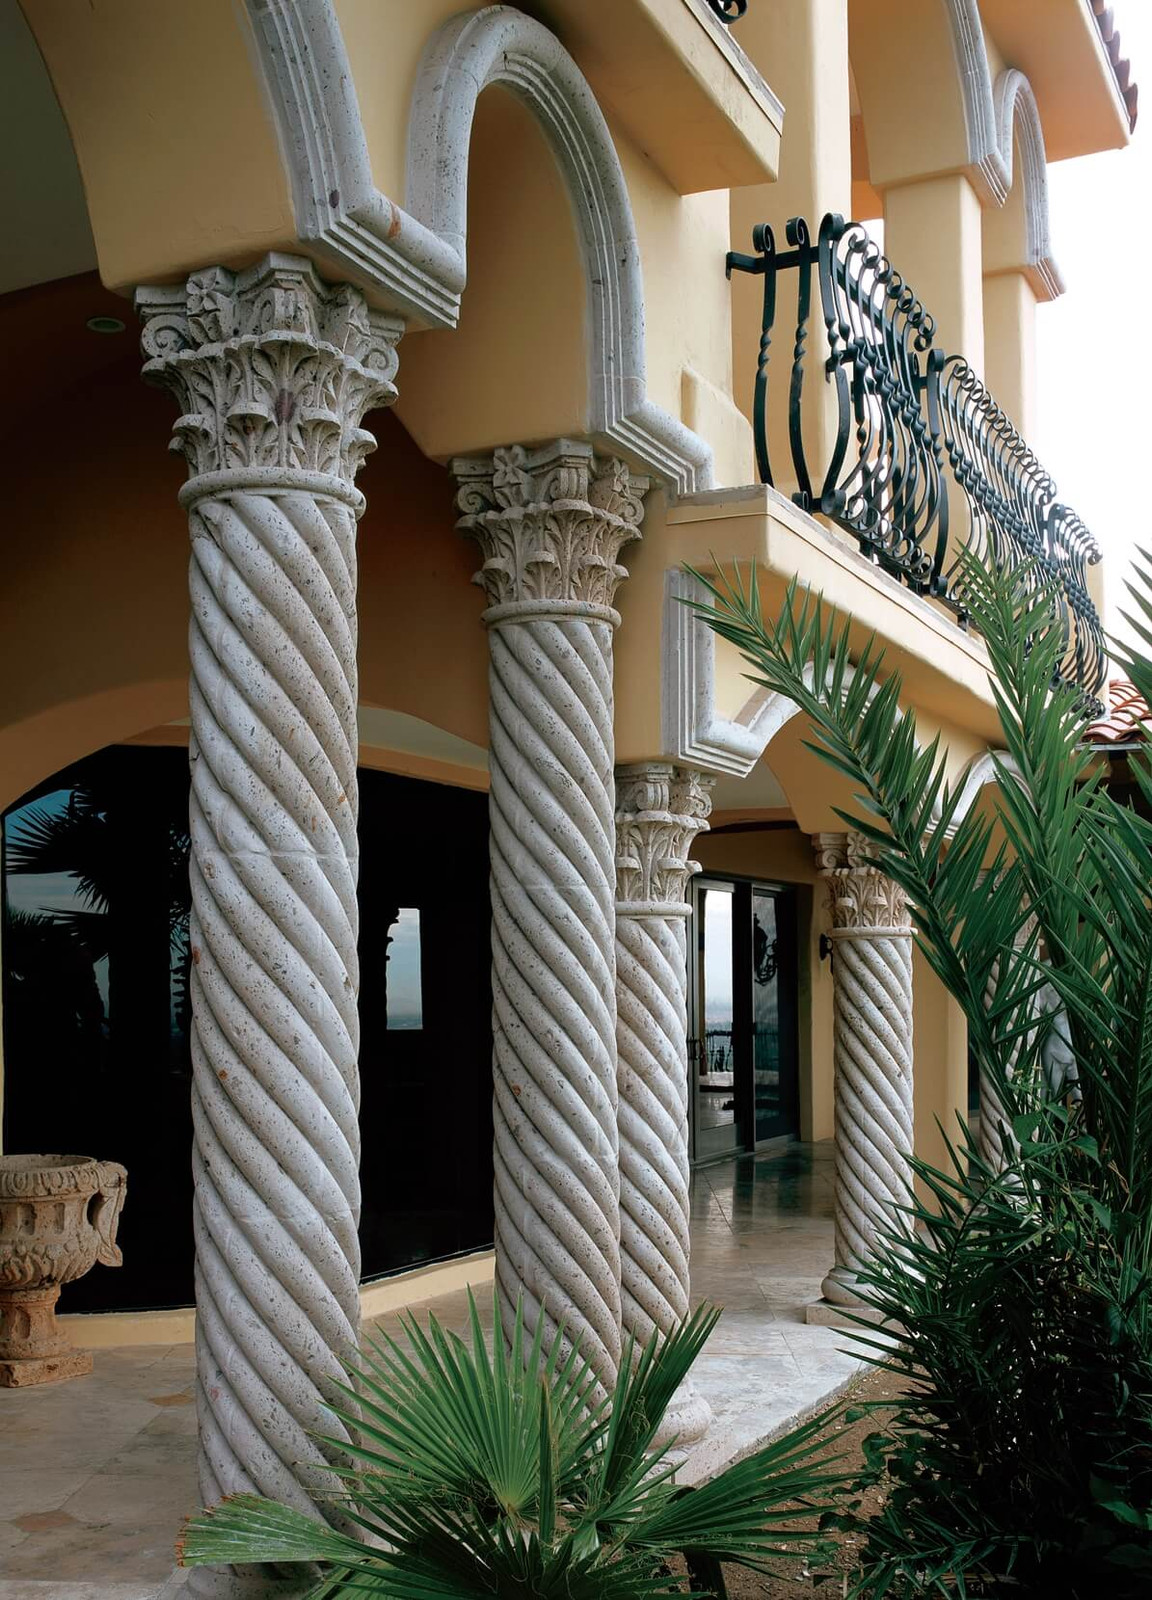 Corinthian Stone Columns With Twisted Shafts